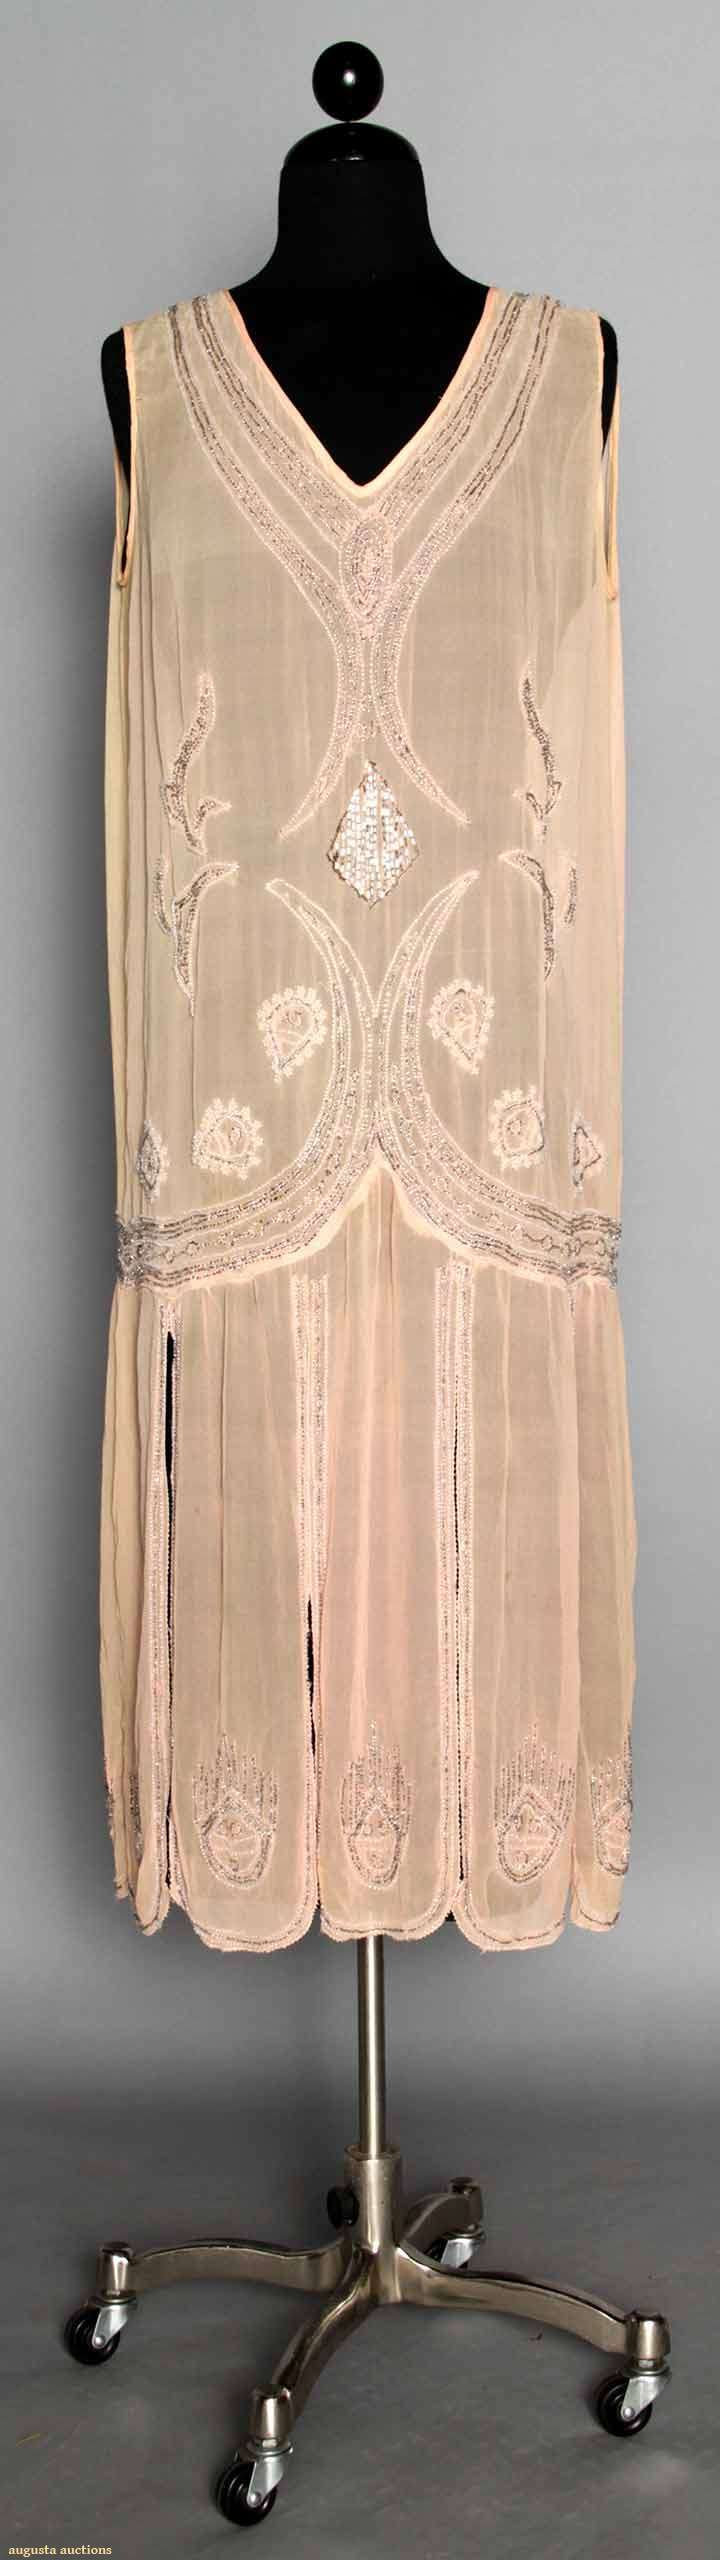 Pink Beaded Flapper Dress, Augusta Auctions, MAY 13th & 14th, 2014, Lot 156